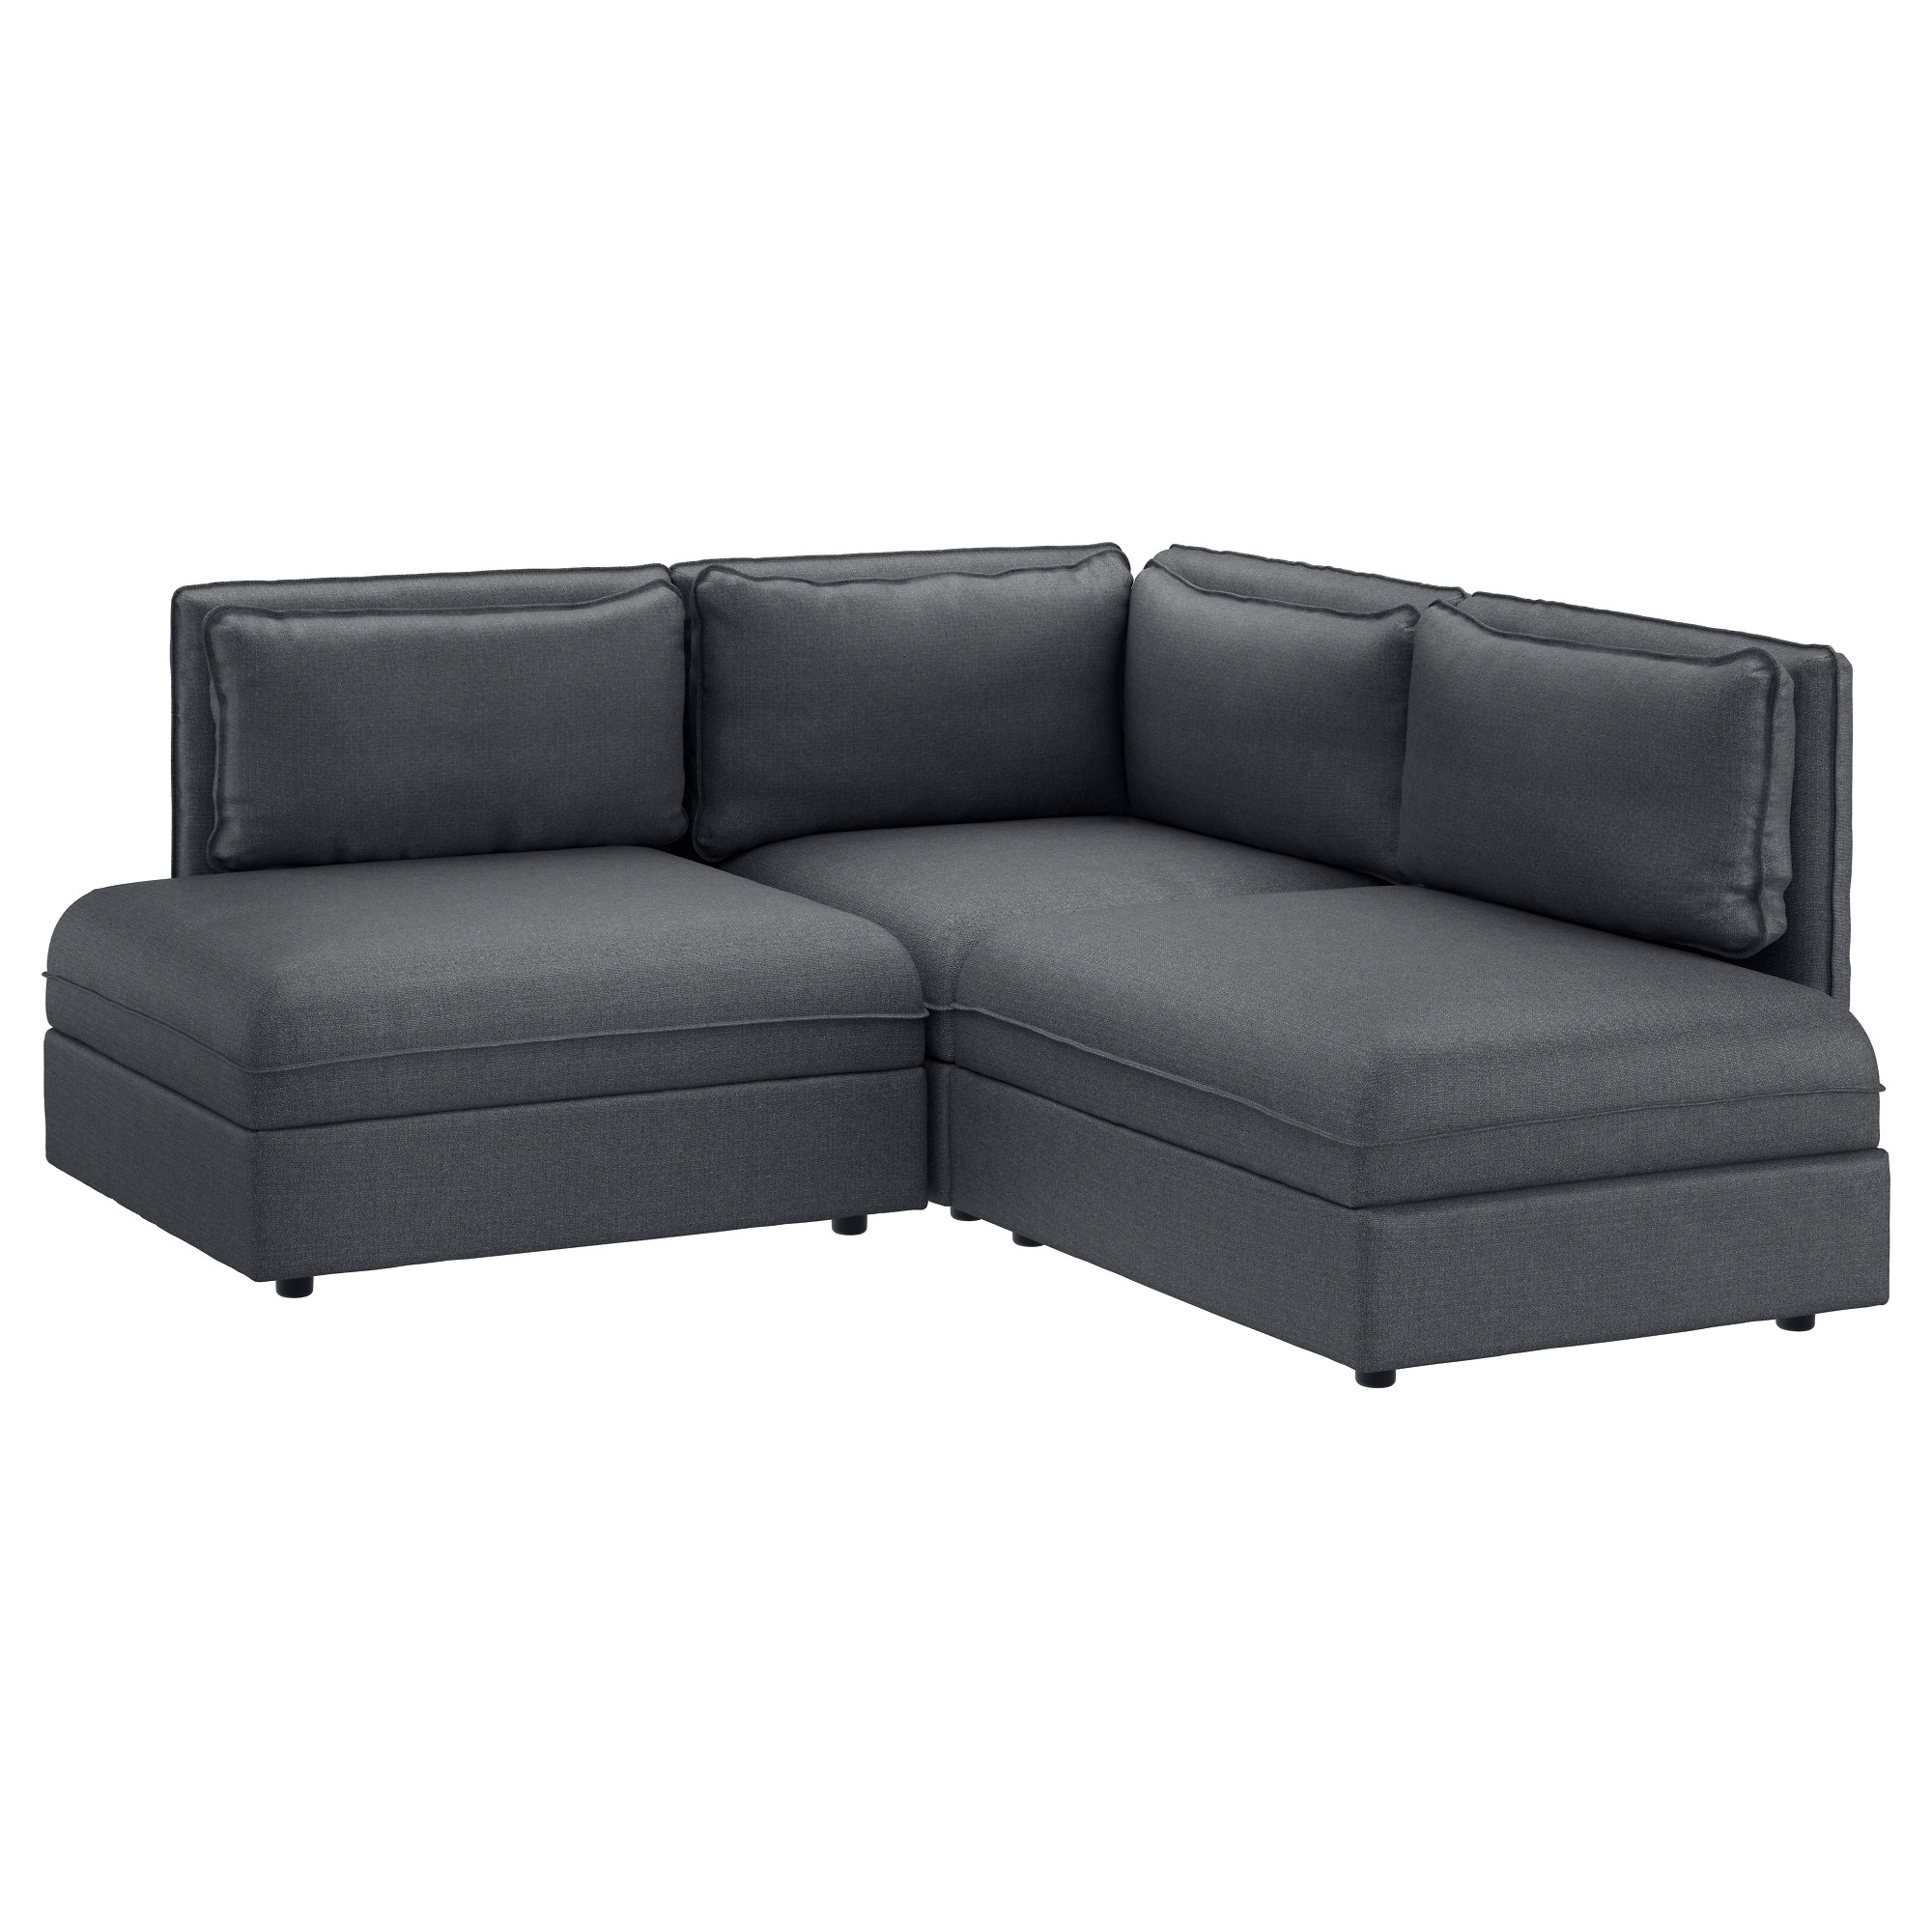 Vallentuna Sectional, 2 Seat – Murum Beige – Ikea In Most Recently Released 2 Seat Sectional Sofas (View 15 of 15)